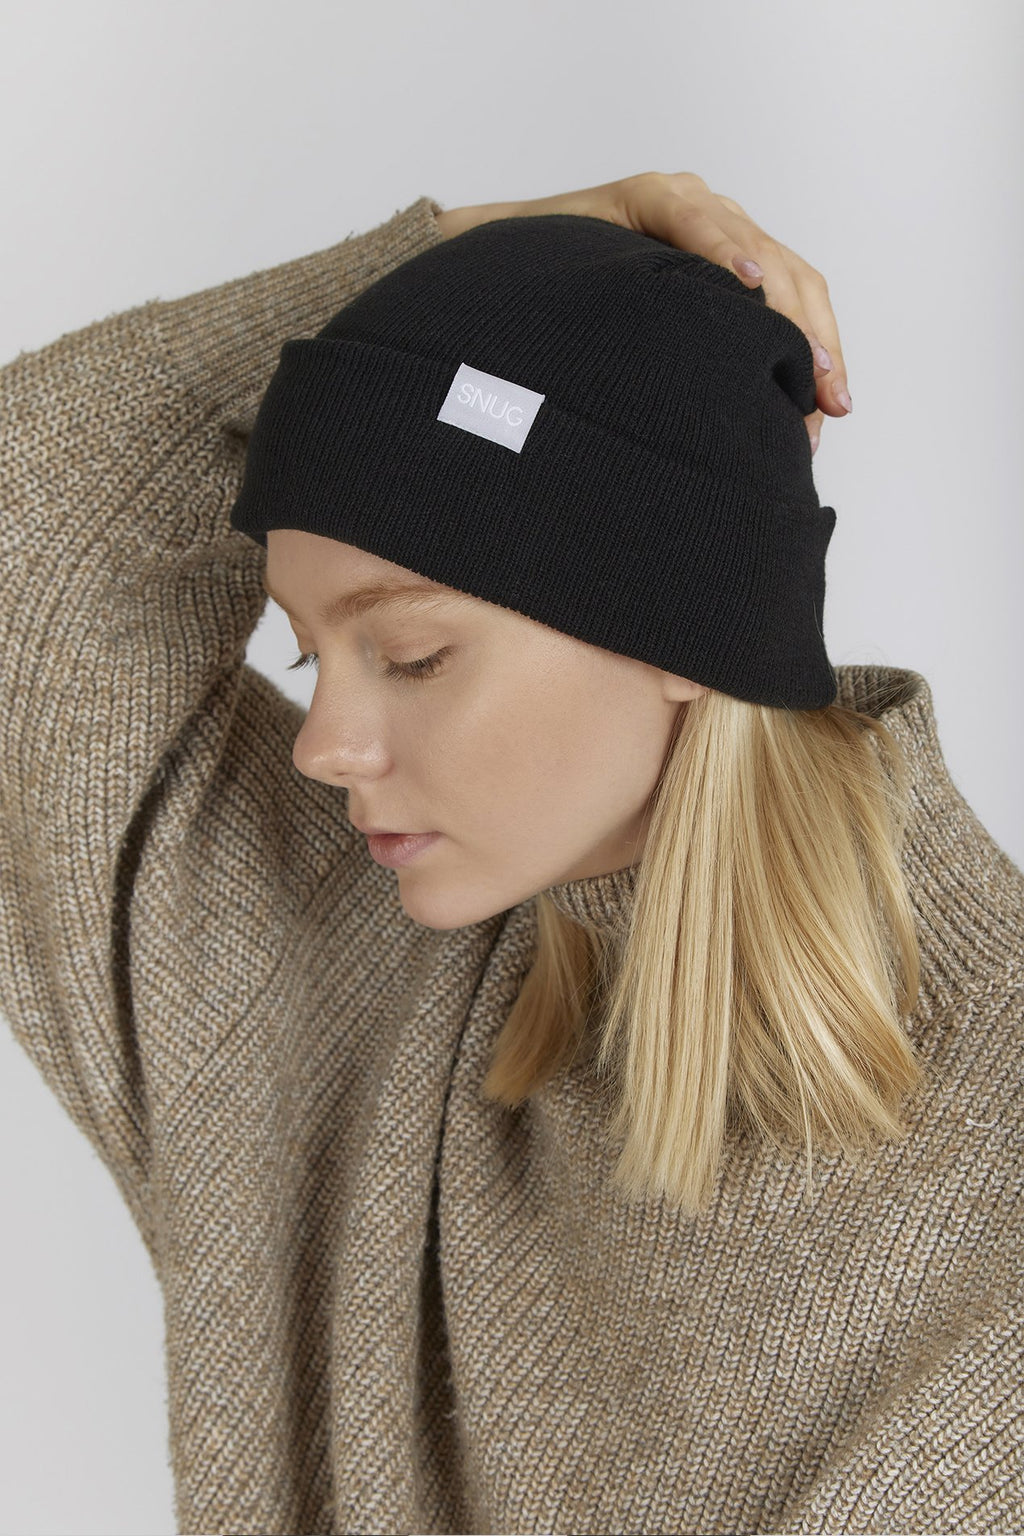 """Night College Bere - Beanie snugbrandwear"""